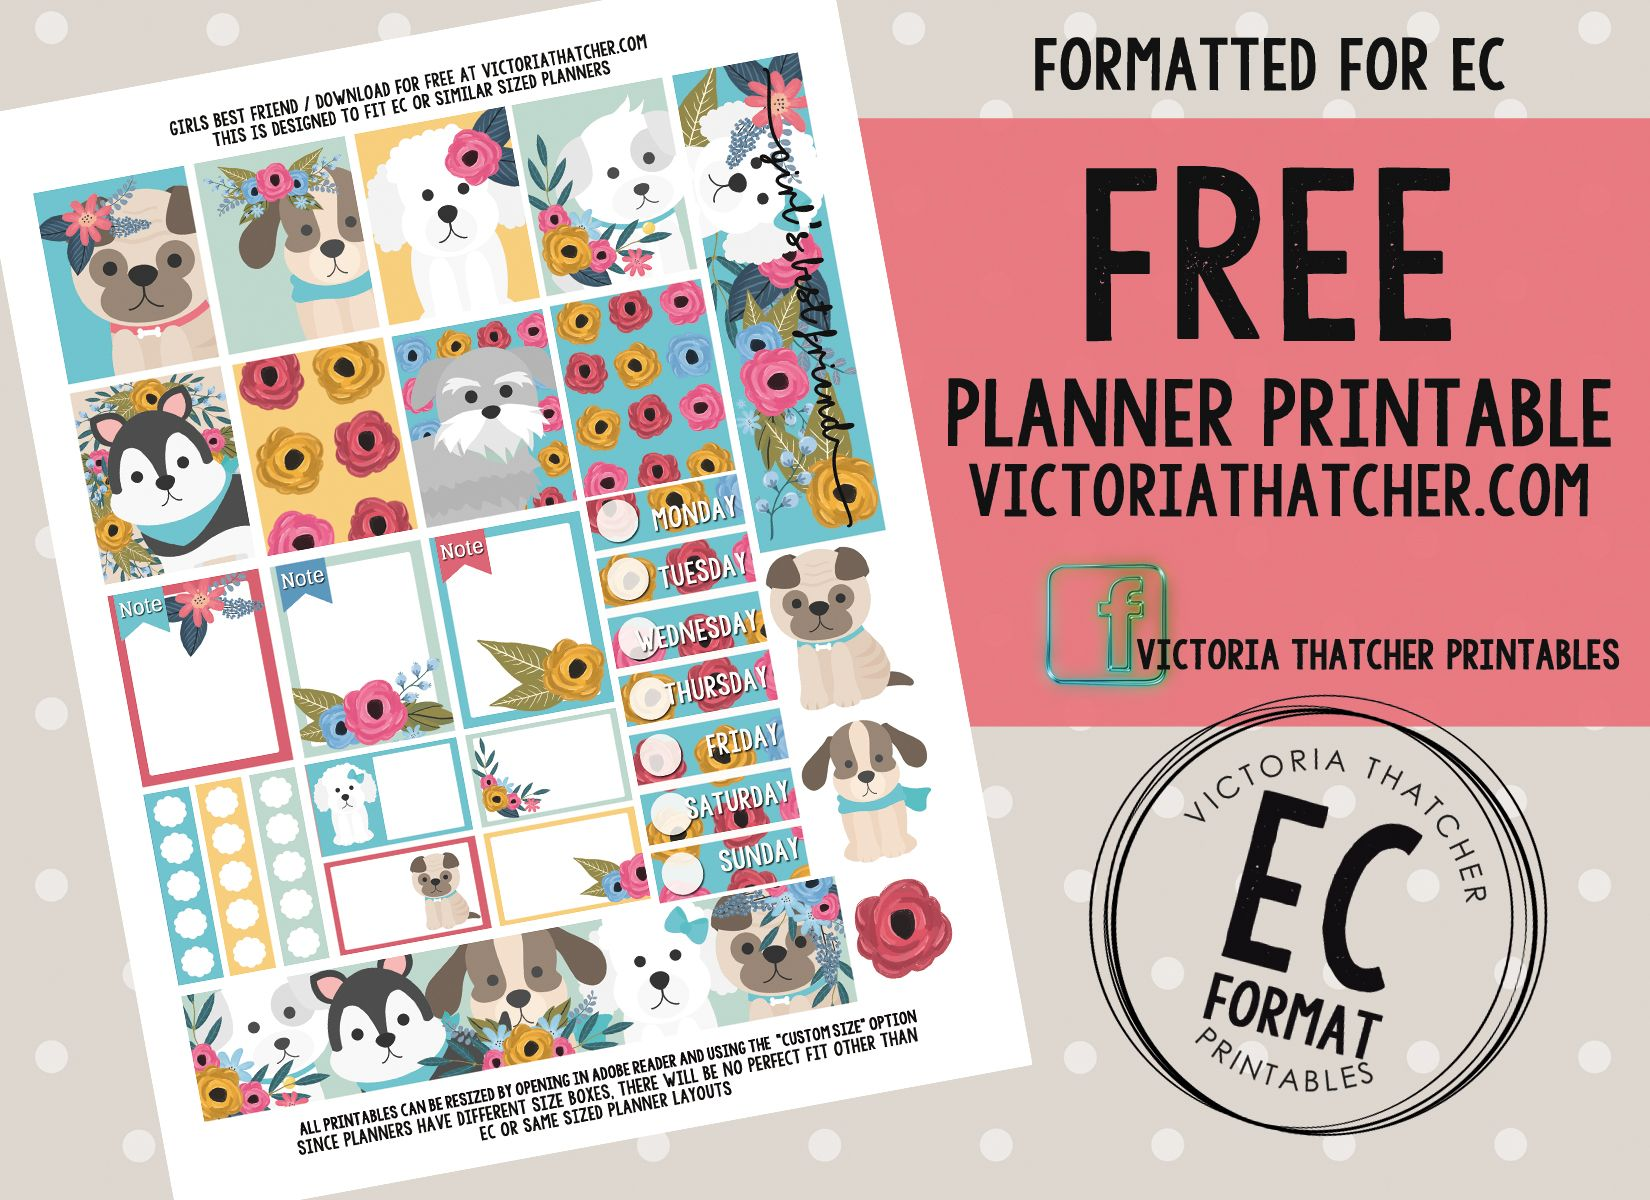 Free Girl's Best Friend Planner Stickers from Victoria